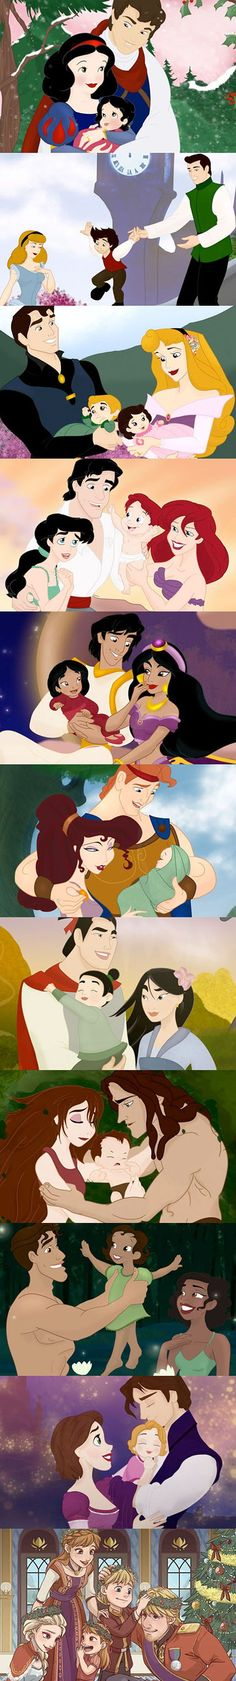 Funny pictures about Every Disney Couple Lives Happily Ever After. Oh, and cool pics about Every Disney Couple Lives Happily Ever After. Also, Every Disney Couple Lives Happily Ever After photos.